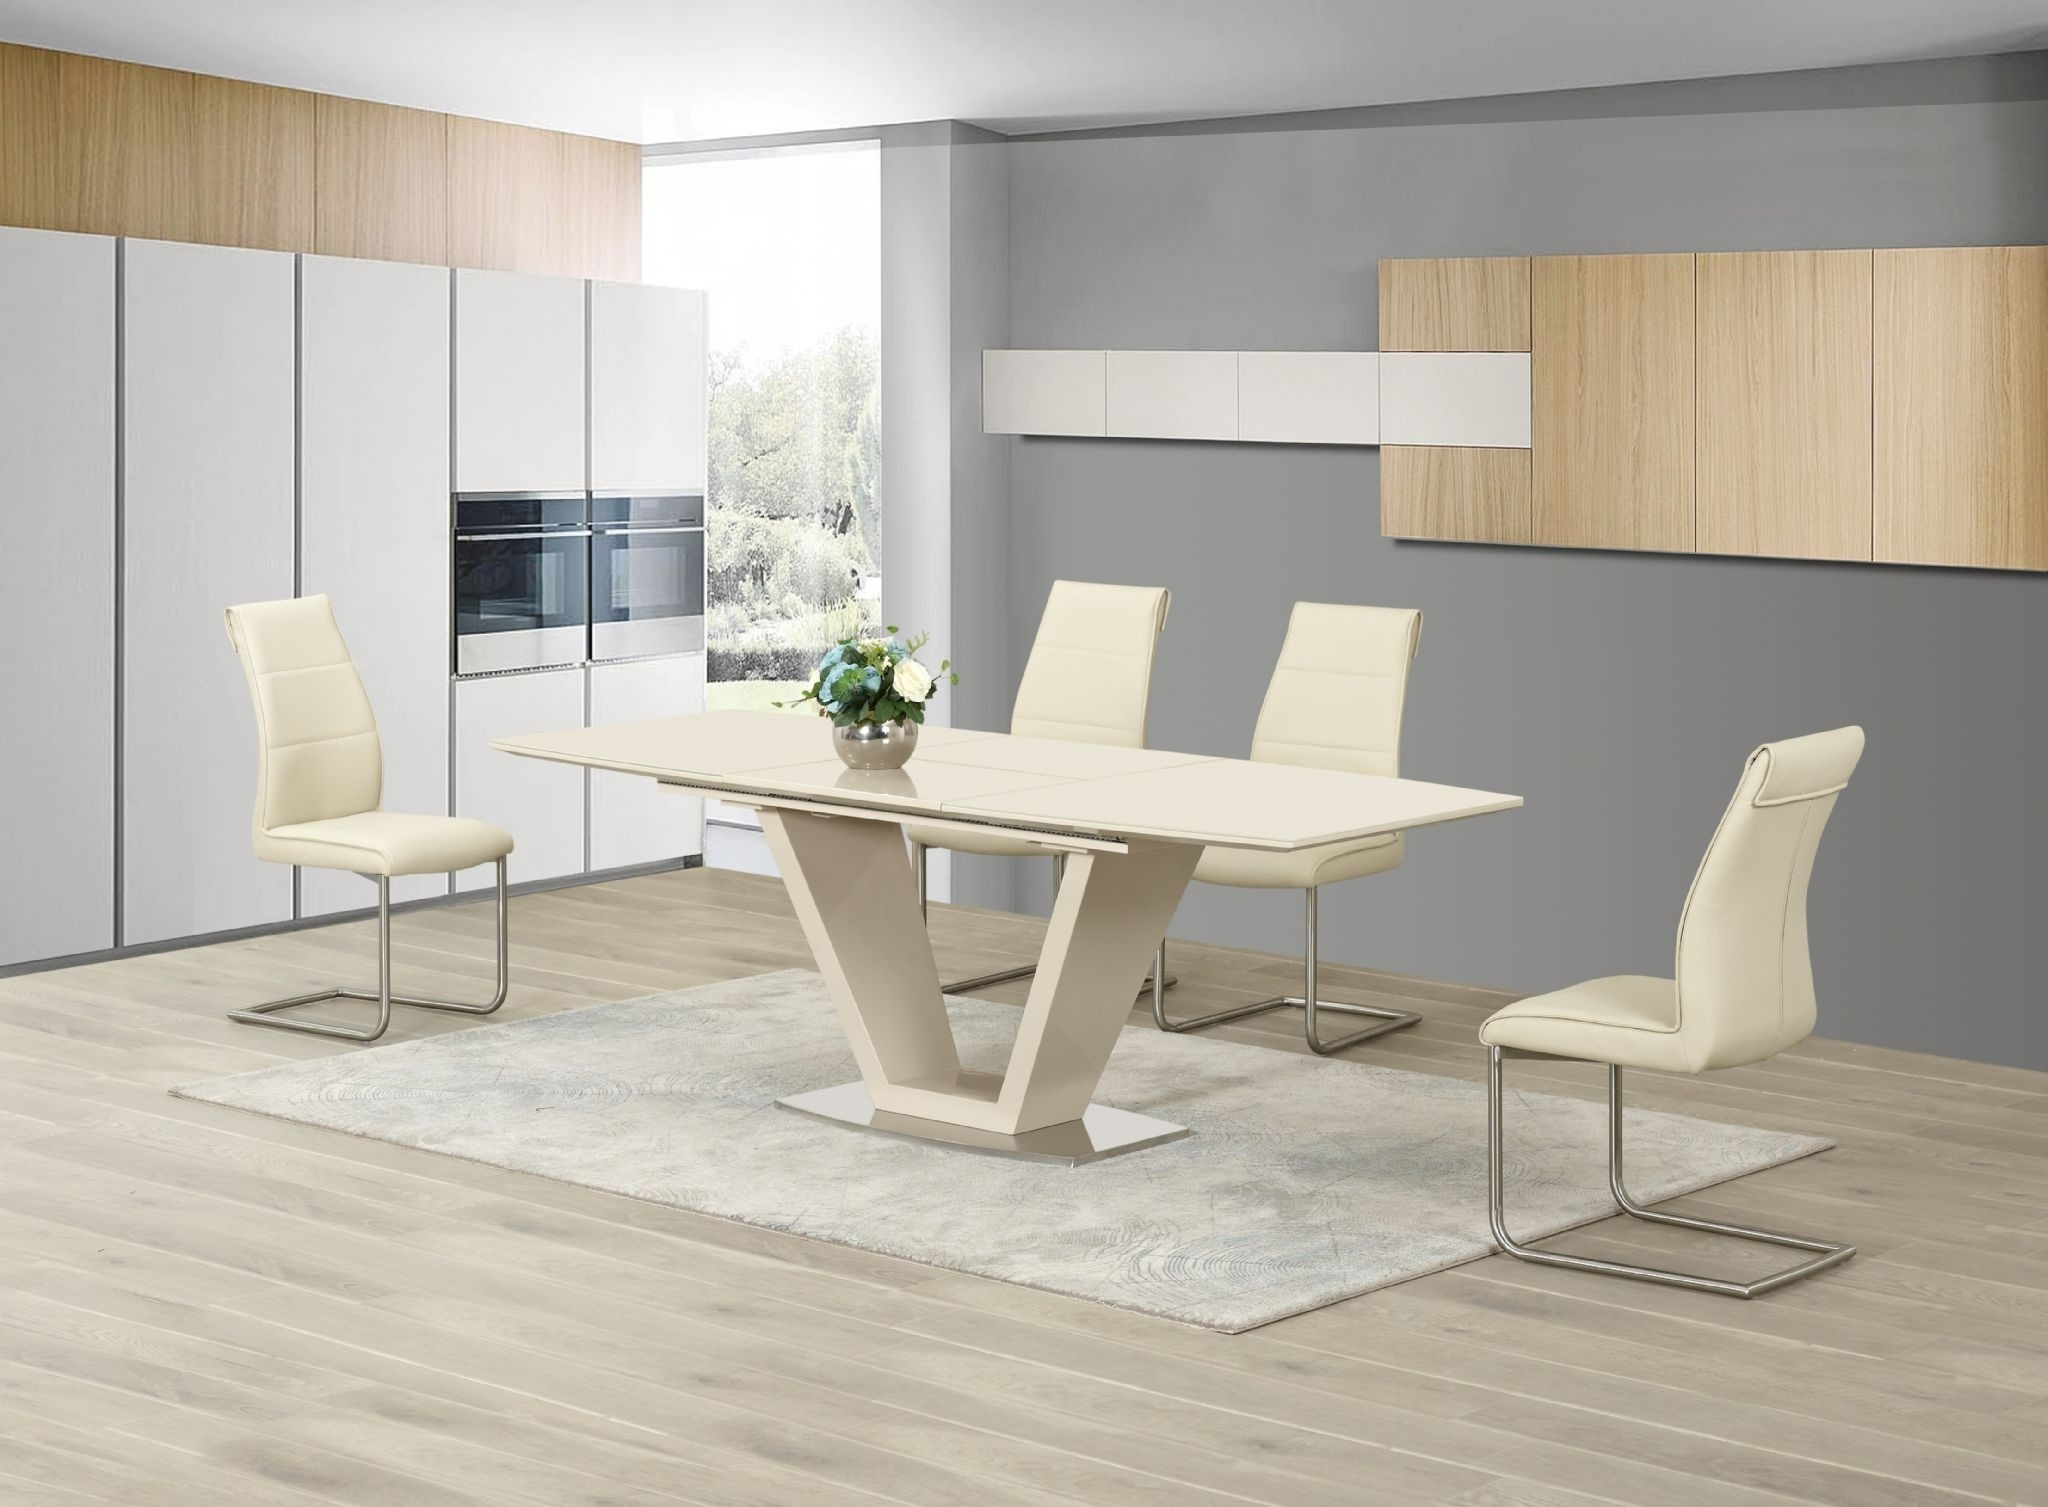 Well Liked High Gloss Extendable Dining Tables Regarding Floris Cream Gloss Extending Dining Table 160 220Cm (View 15 of 25)